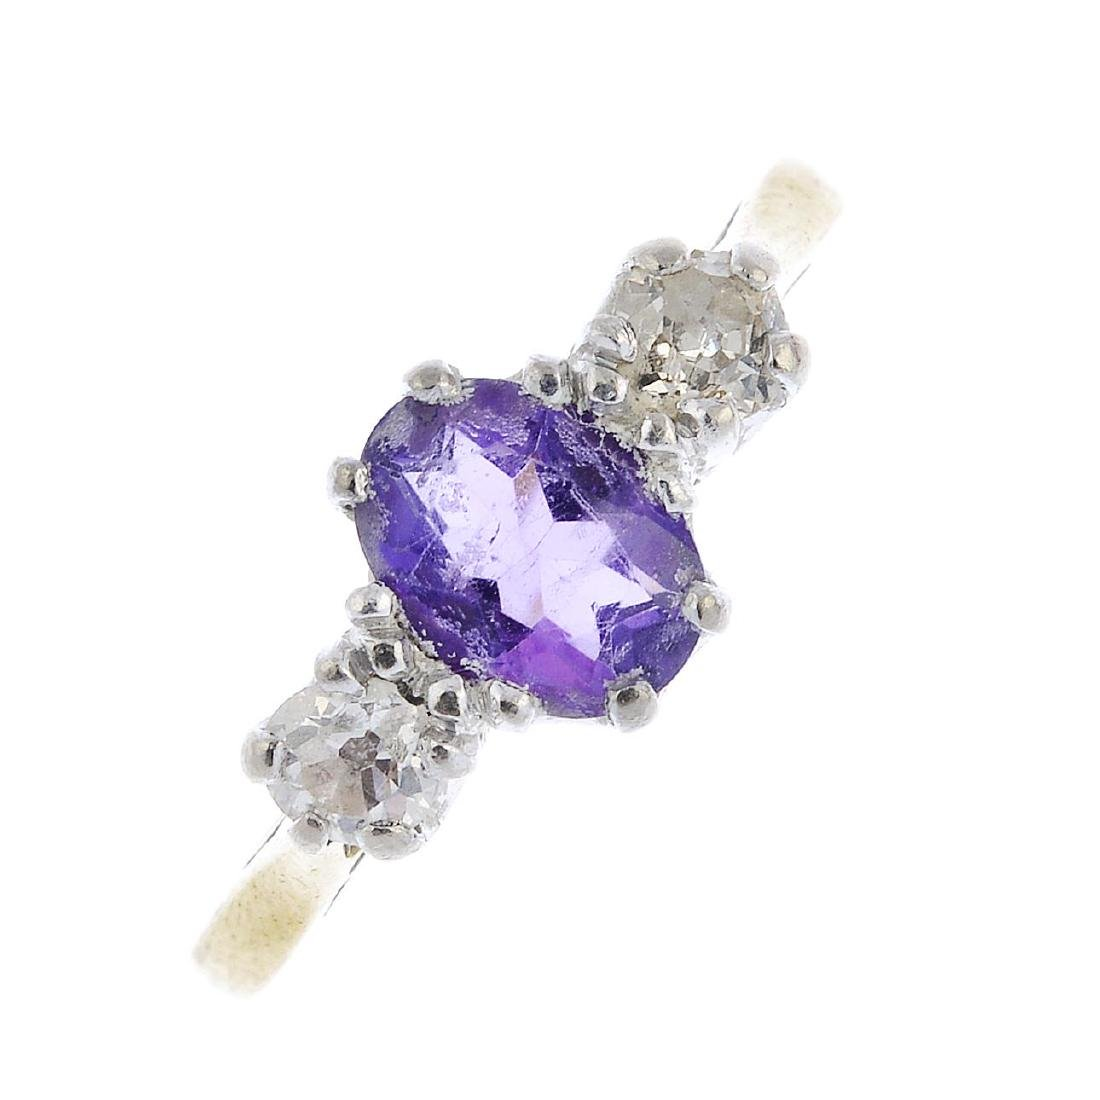 An 18ct gold amethyst and diamond three-stone ring. The